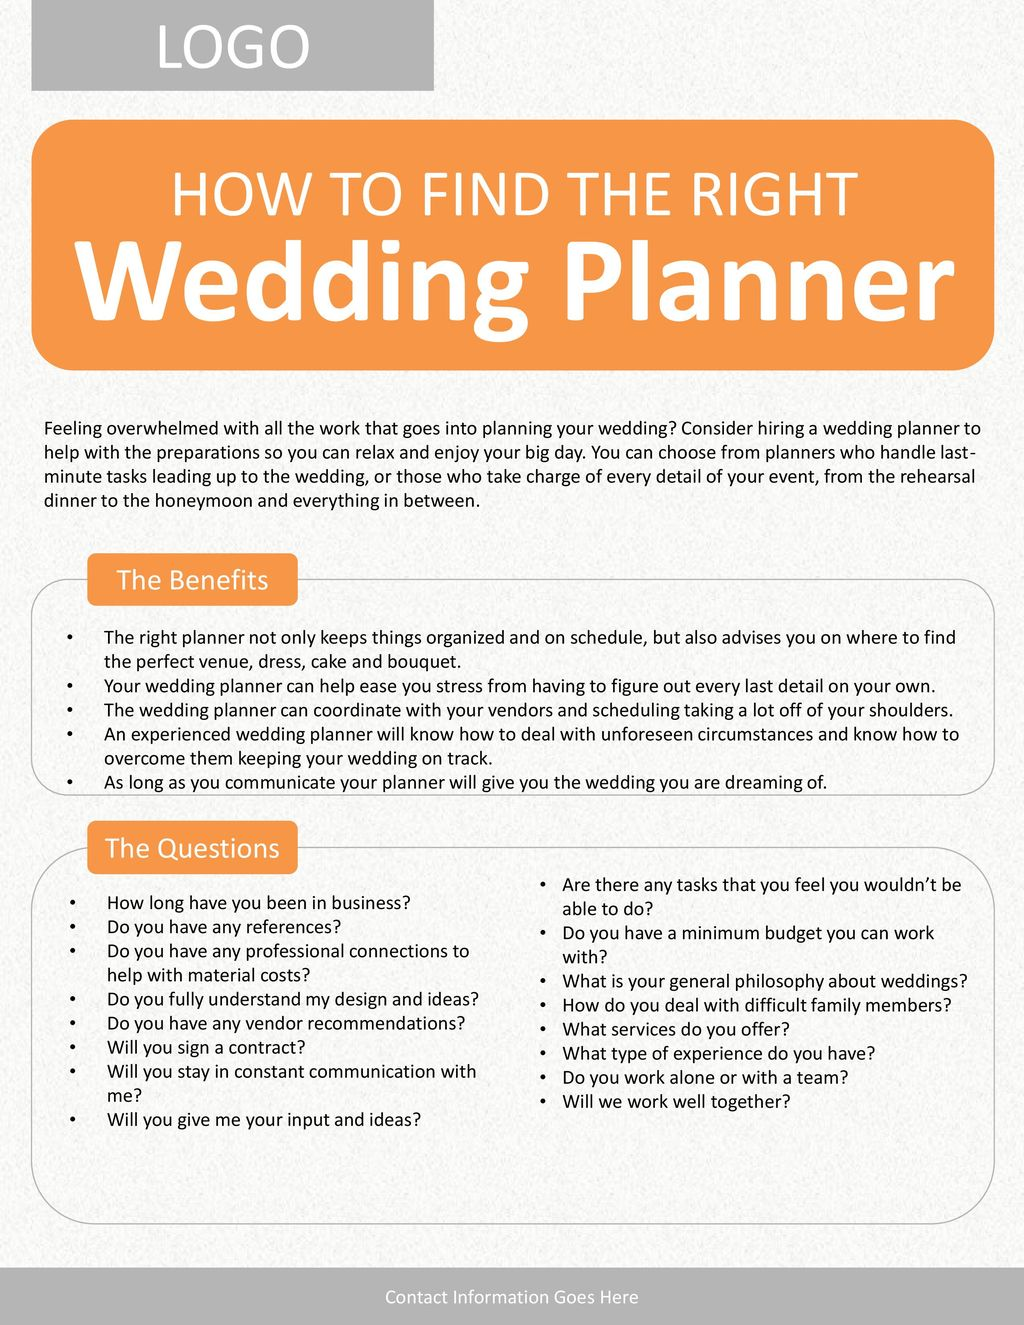 Wedding Planner LOGO HOW TO FIND THE RIGHT The Benefits The ...